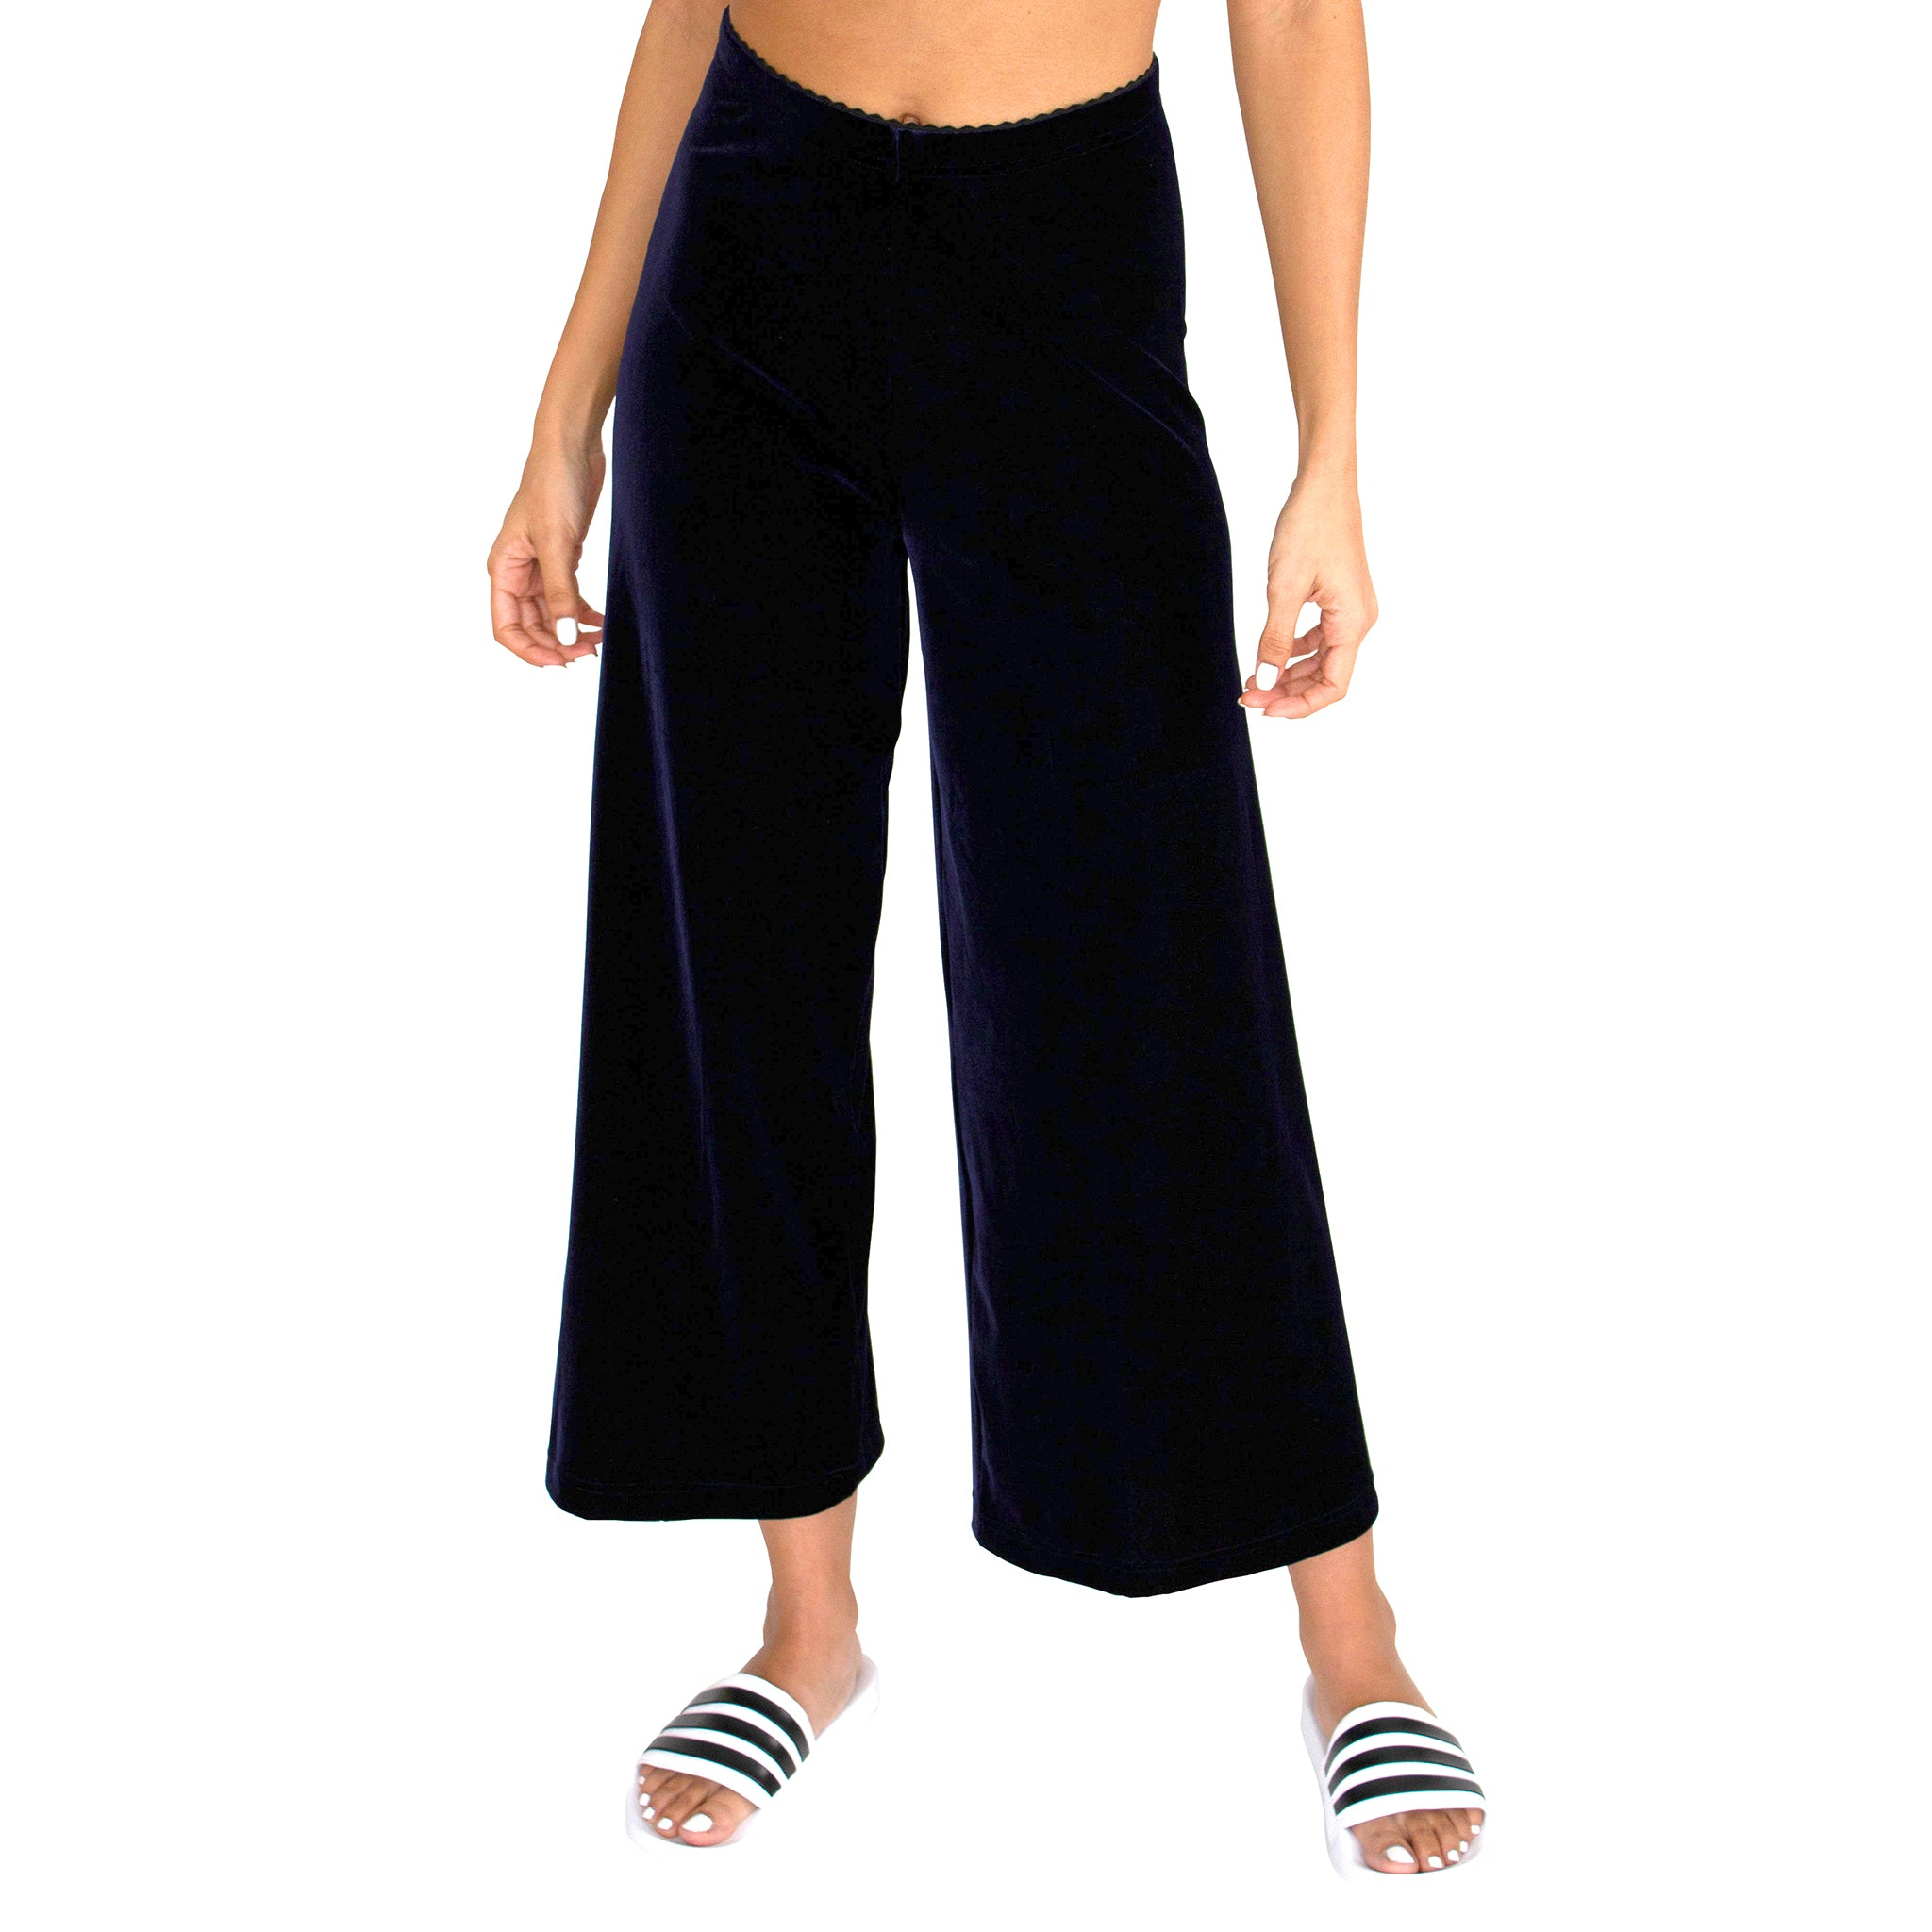 "Front view of our Cropped Length Stretch Velvet Pant in Sapphire (Dark Blue) has elastic waist and 26"" inseam."